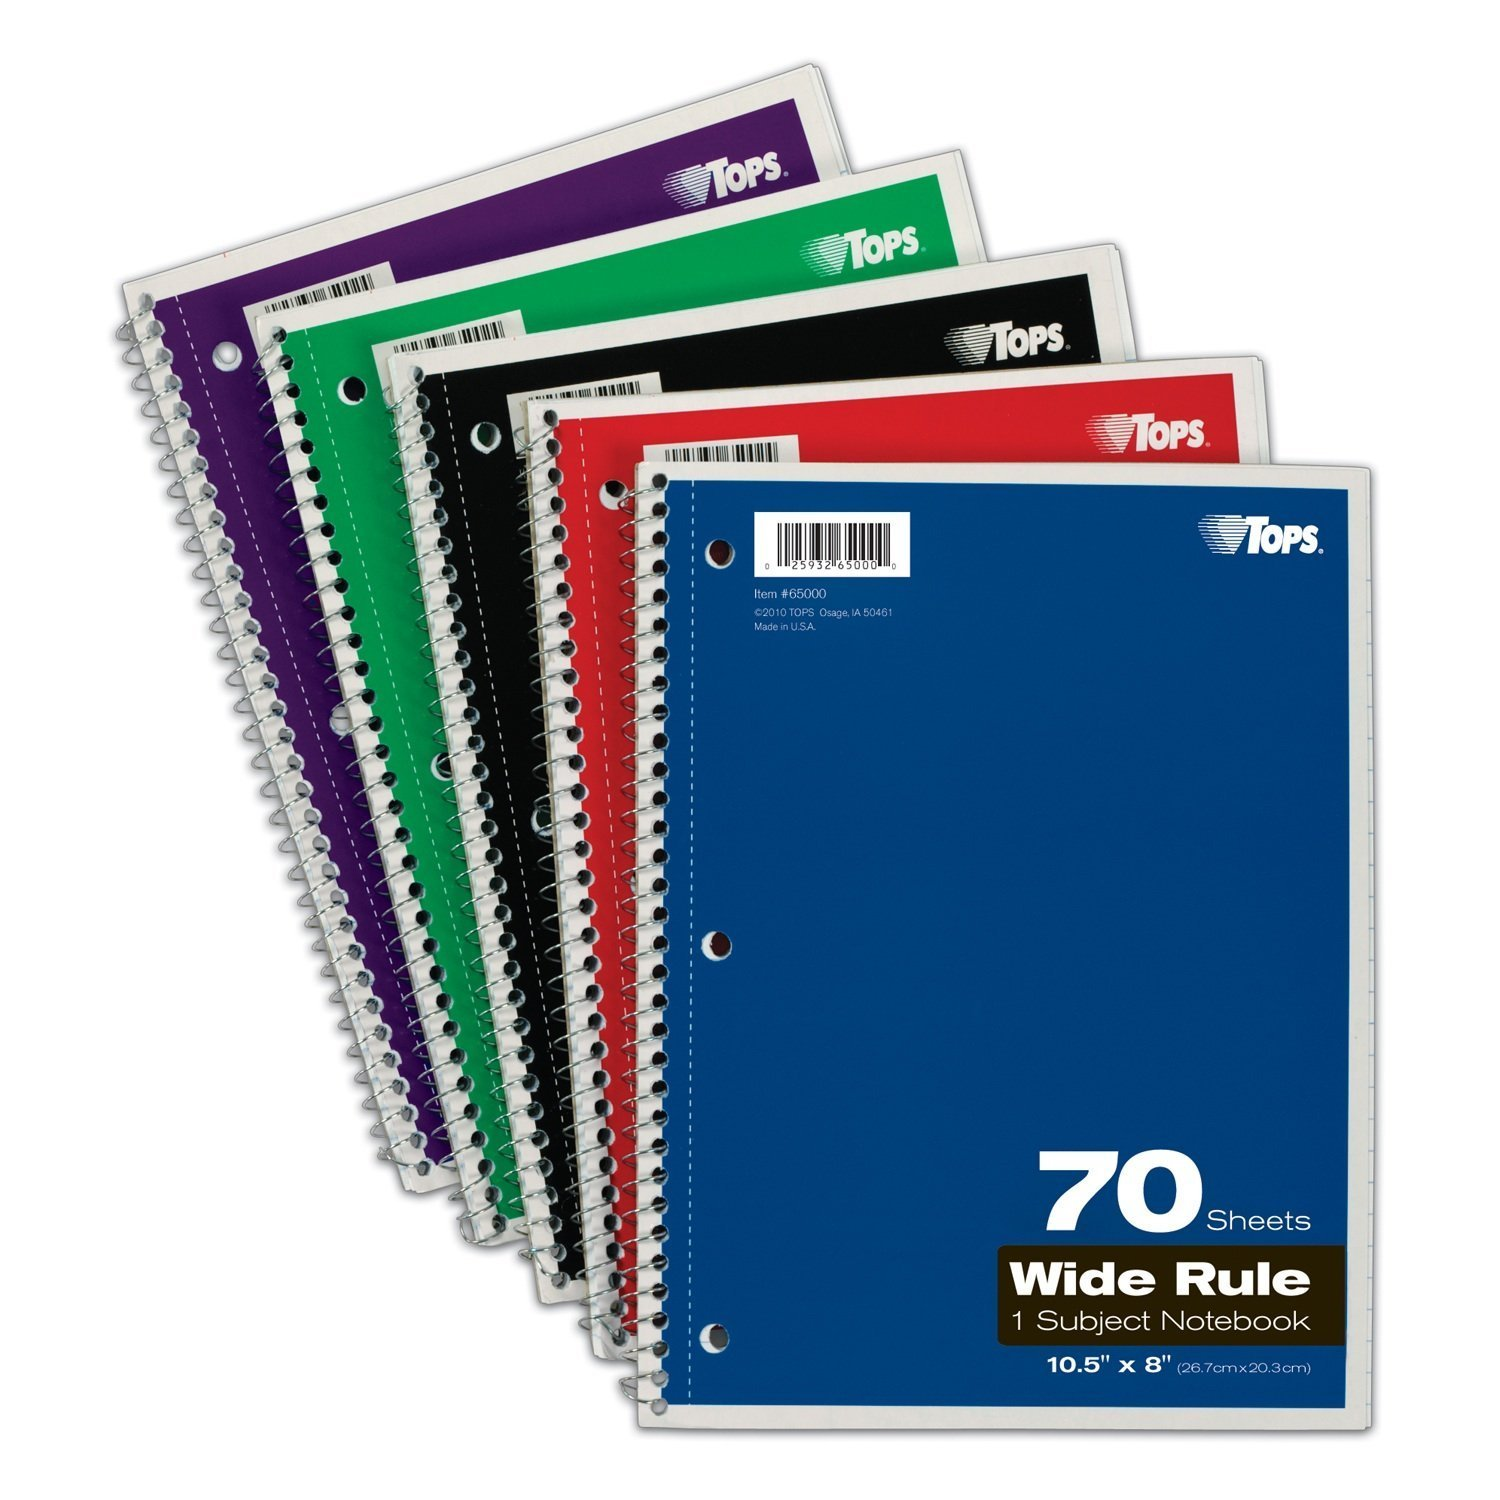 TOPS 1-Subject Spiral Notebooks, Wide Rule, 8 x 10.5 Inches, 70 White Sheets per Book, Cover Colors May Vary, Box of 24 (65000)